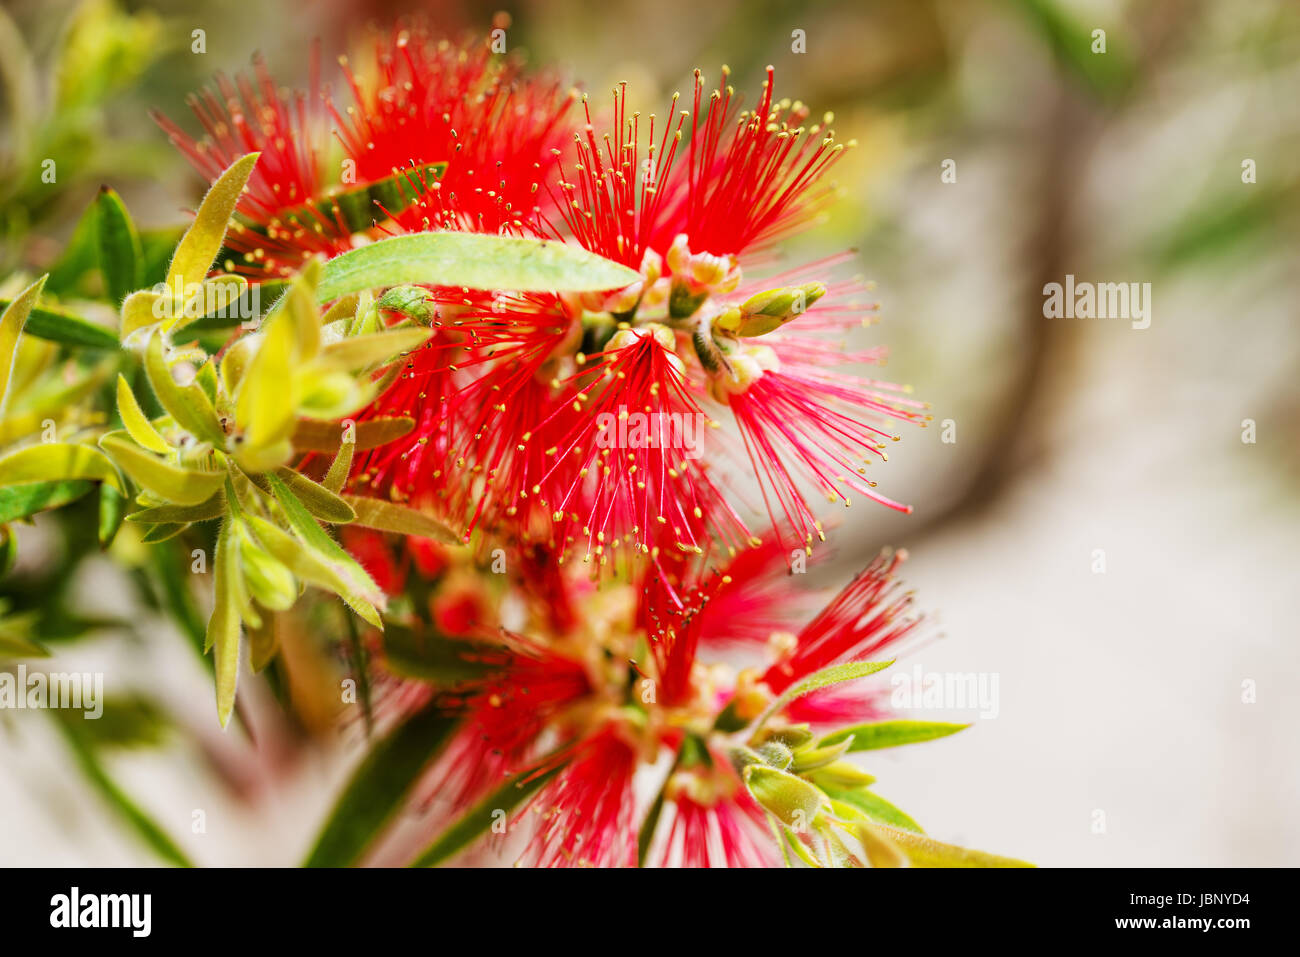 Tropical Plant 2 - Stock Image